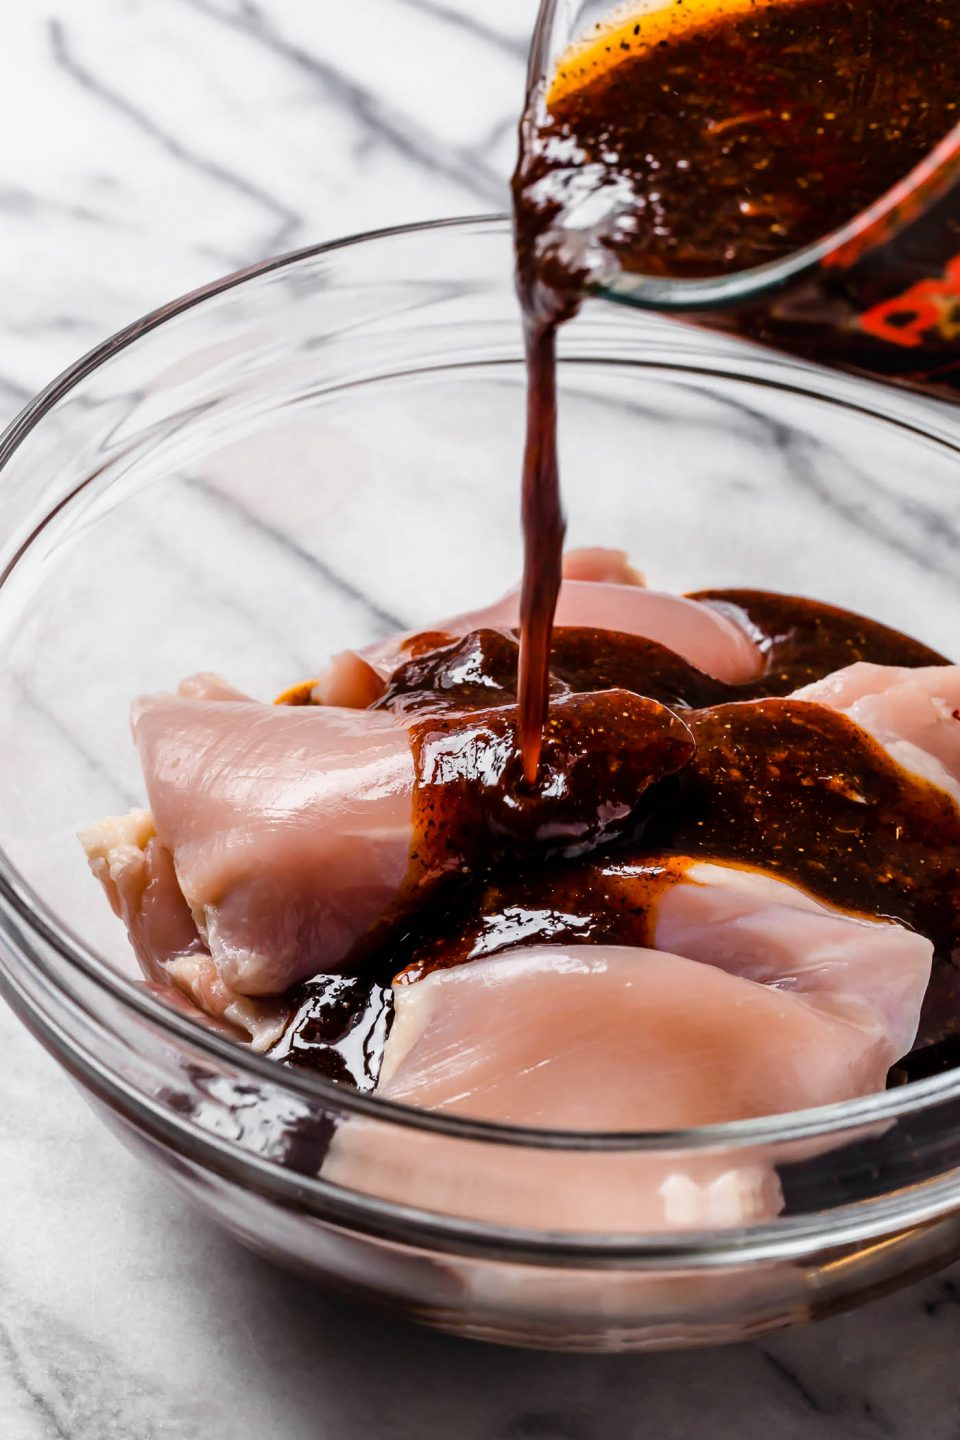 All purpose marinade is poured into a clear glass bowl of raw chicken thighs to marinate